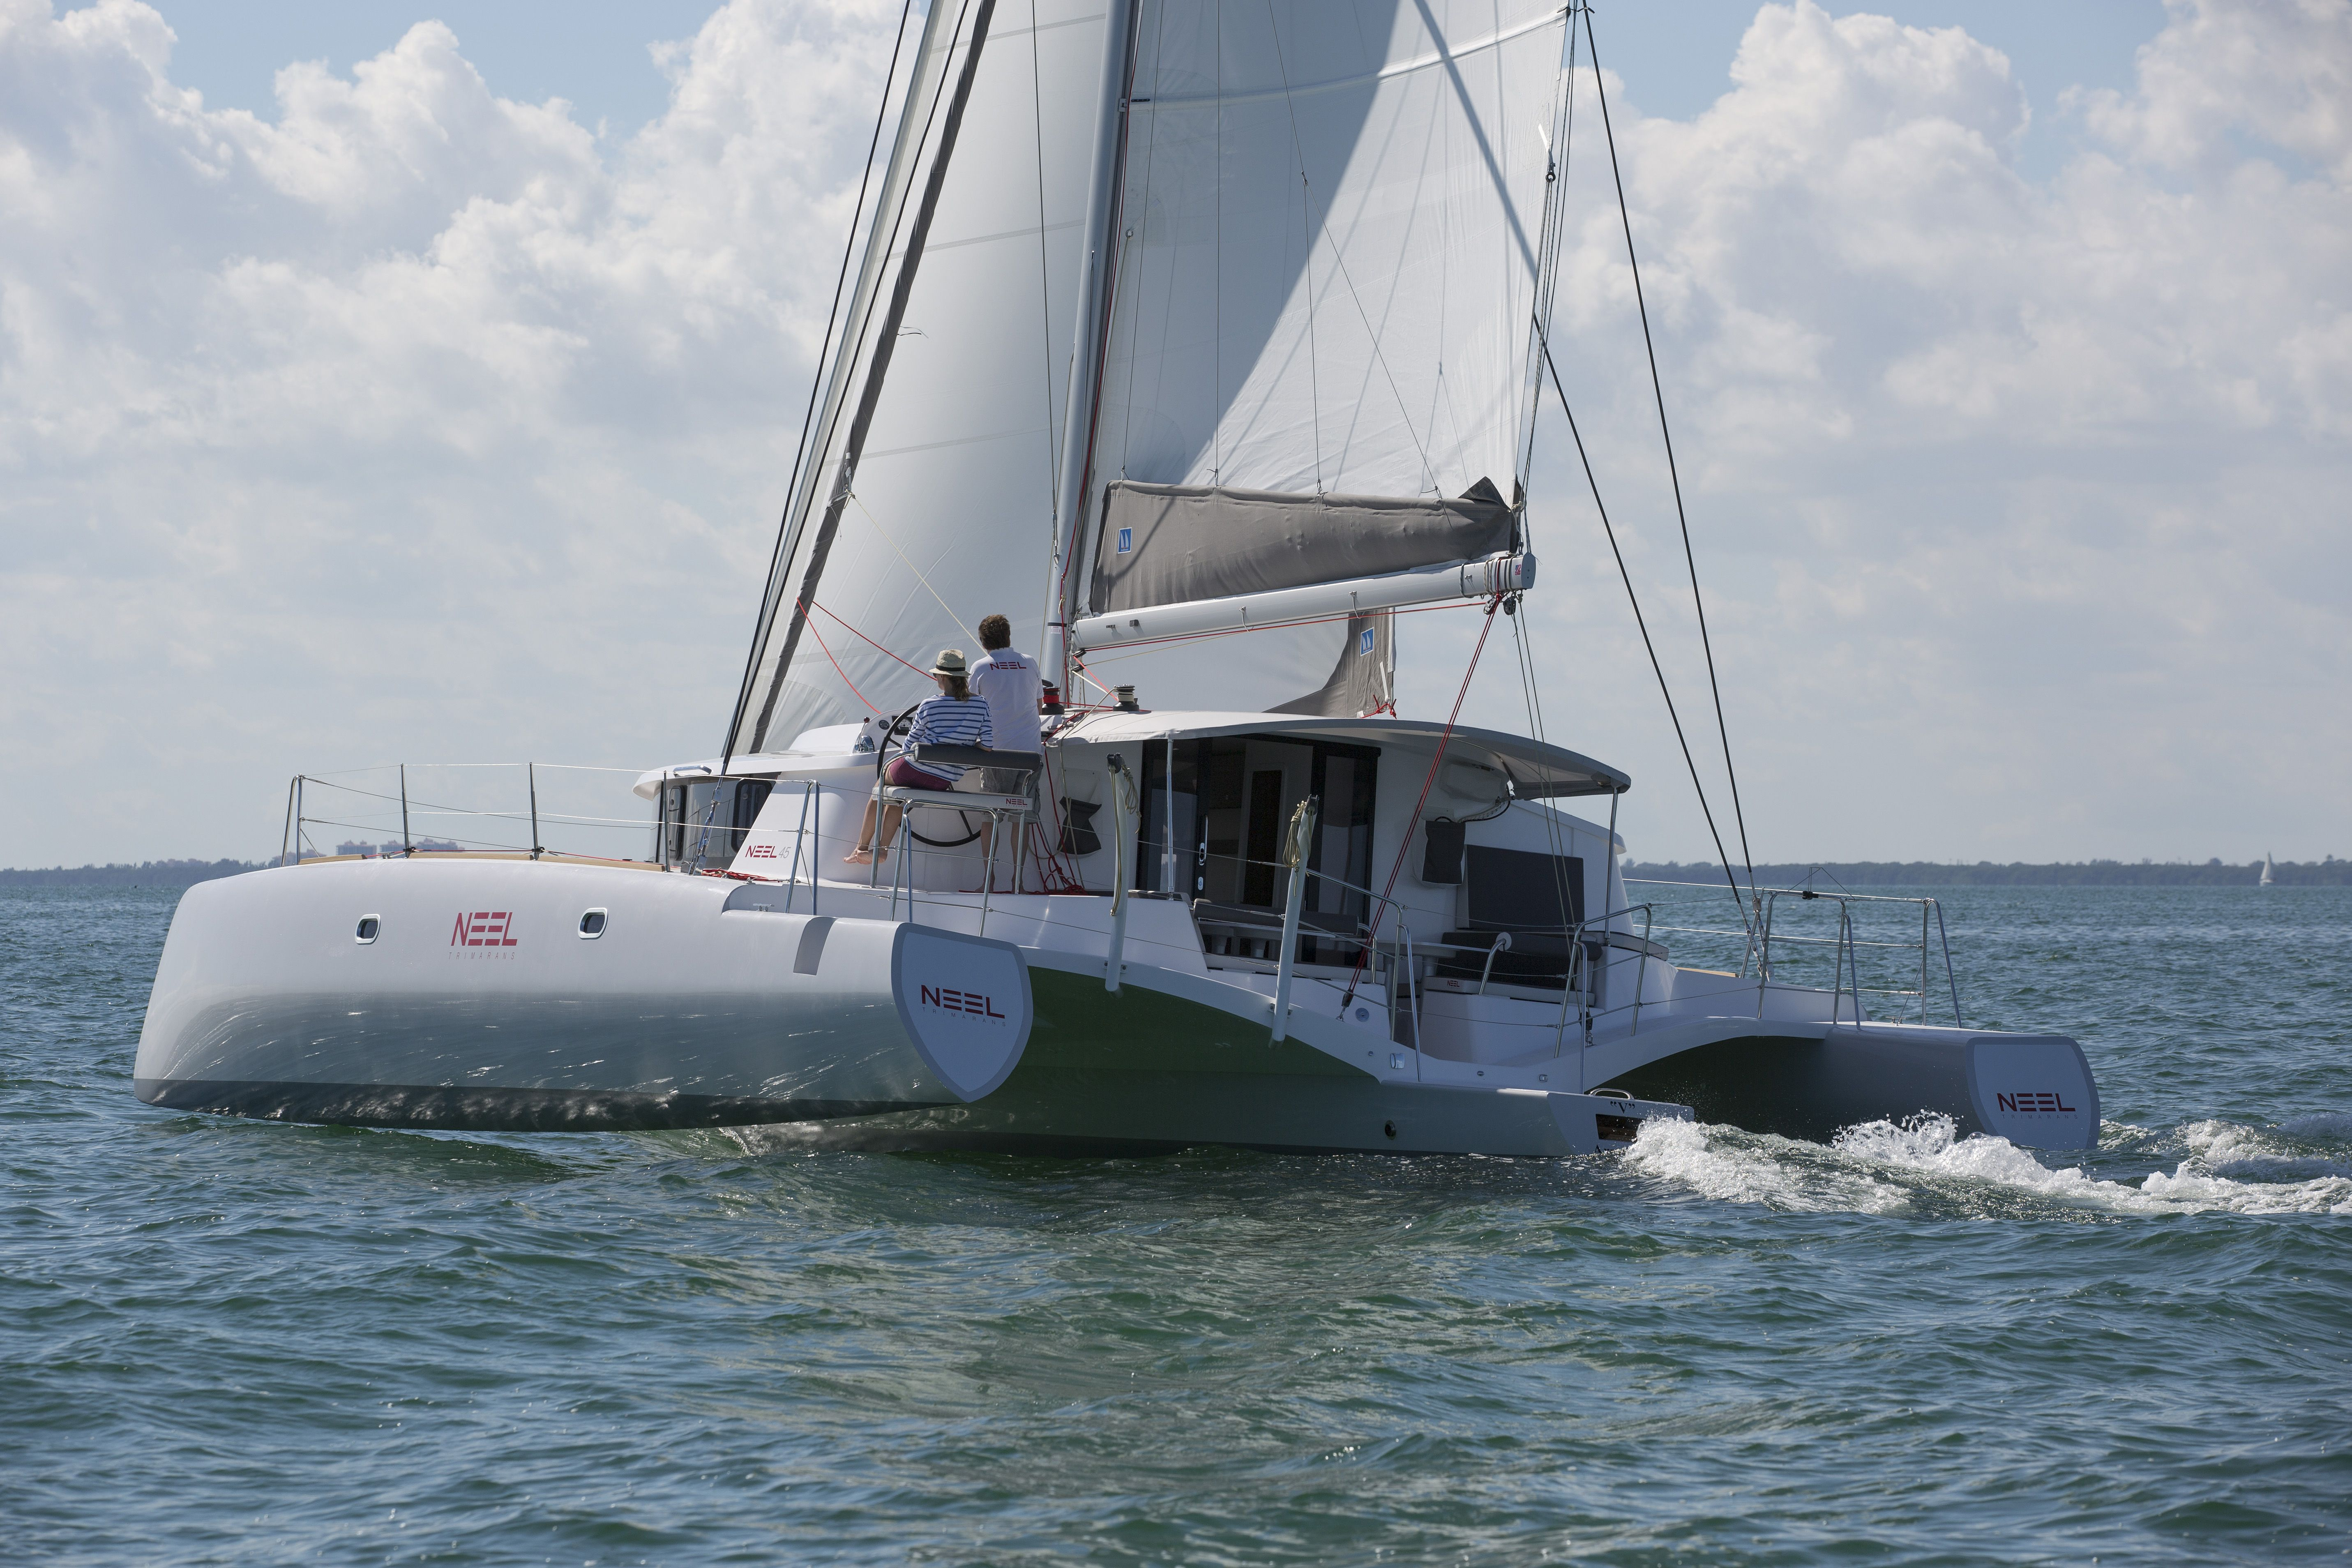 Trimaran segeln  Neel 45 trimaran in Miami FL | Trimaran | Pinterest | Miami